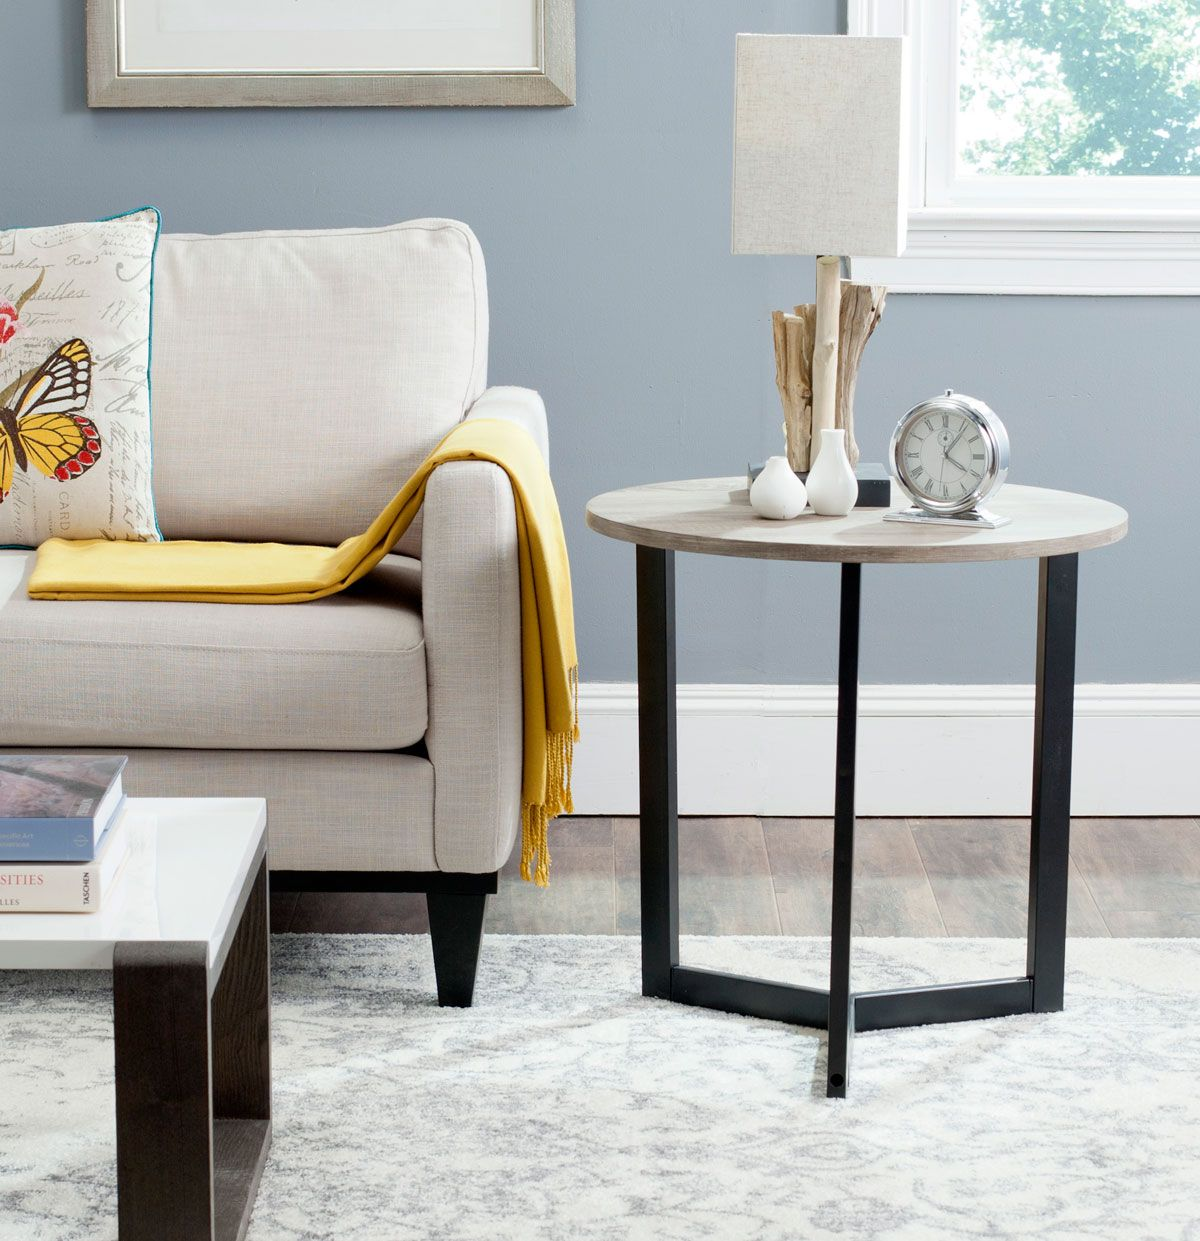 Foxa accent tables furniture by midcentury modern small